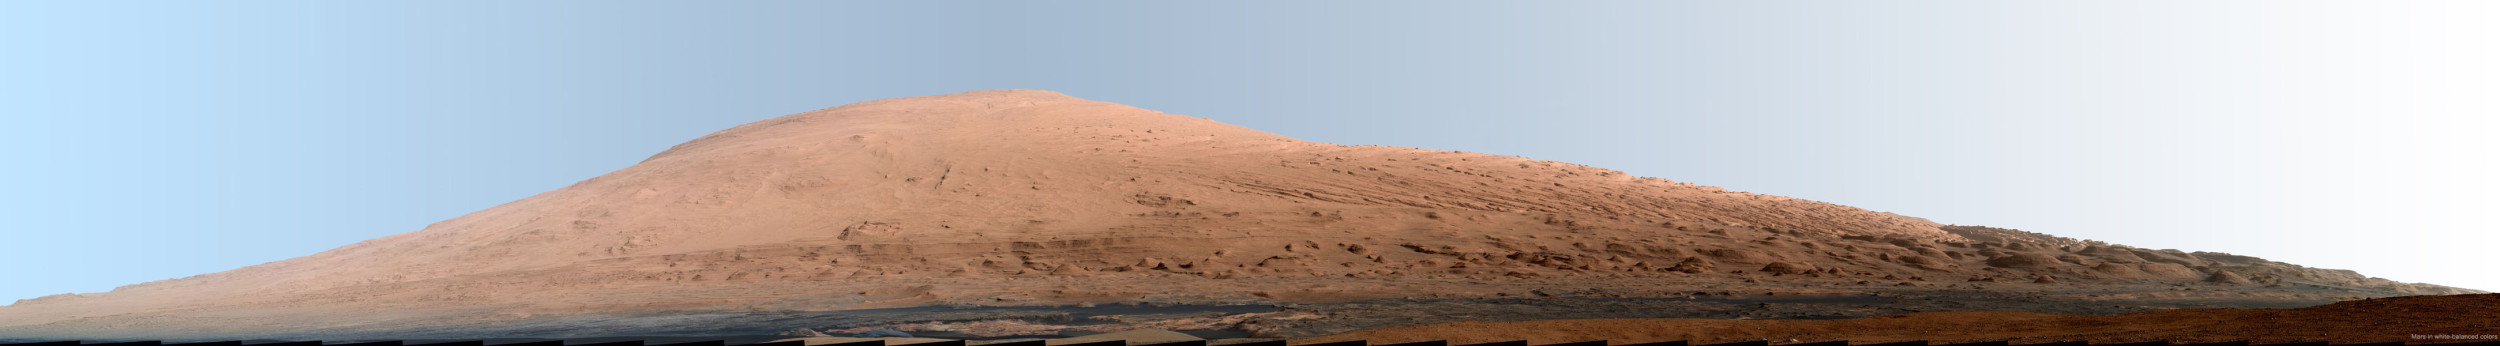 Mosaic of images from NASA's Mars rover Curiosity shows nearby Mount Sharp in a white-balanced color adjustment that makes the sky look blue (Martian sky is actually pink) but shows the terrain as if under Earth-like lighting. Image via NASA.